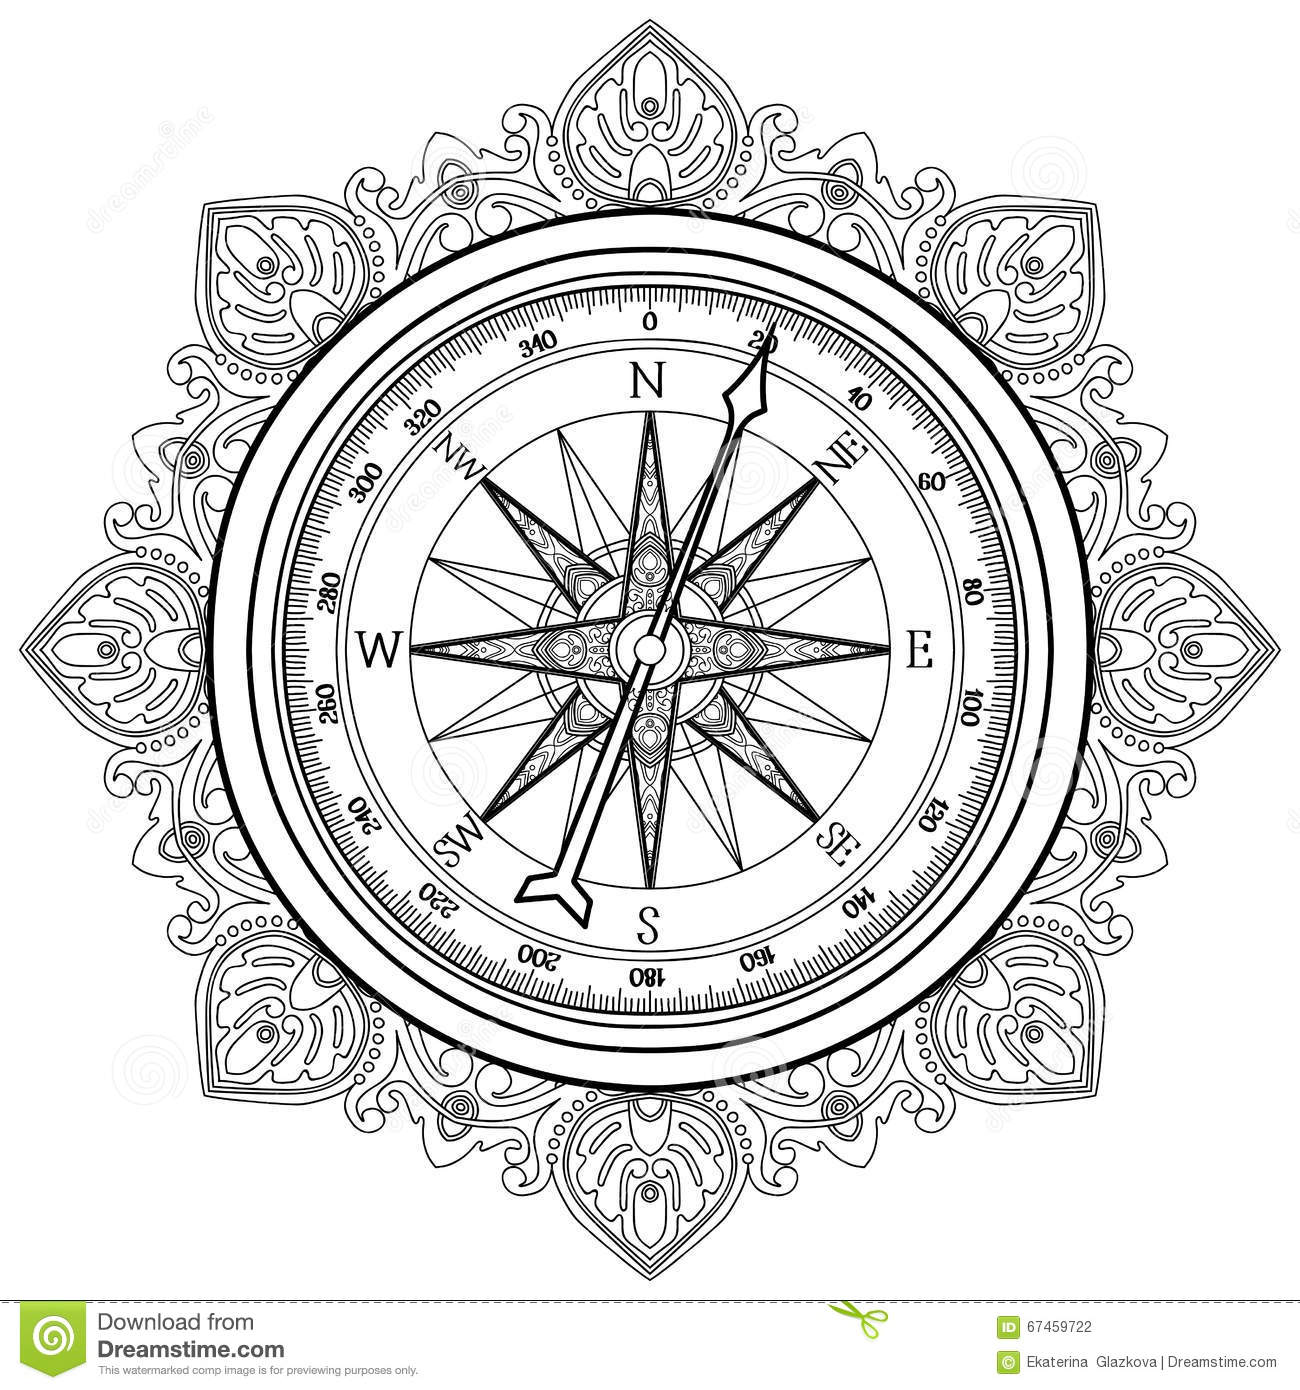 Graphic wind rose compass stock vector. Illustration of